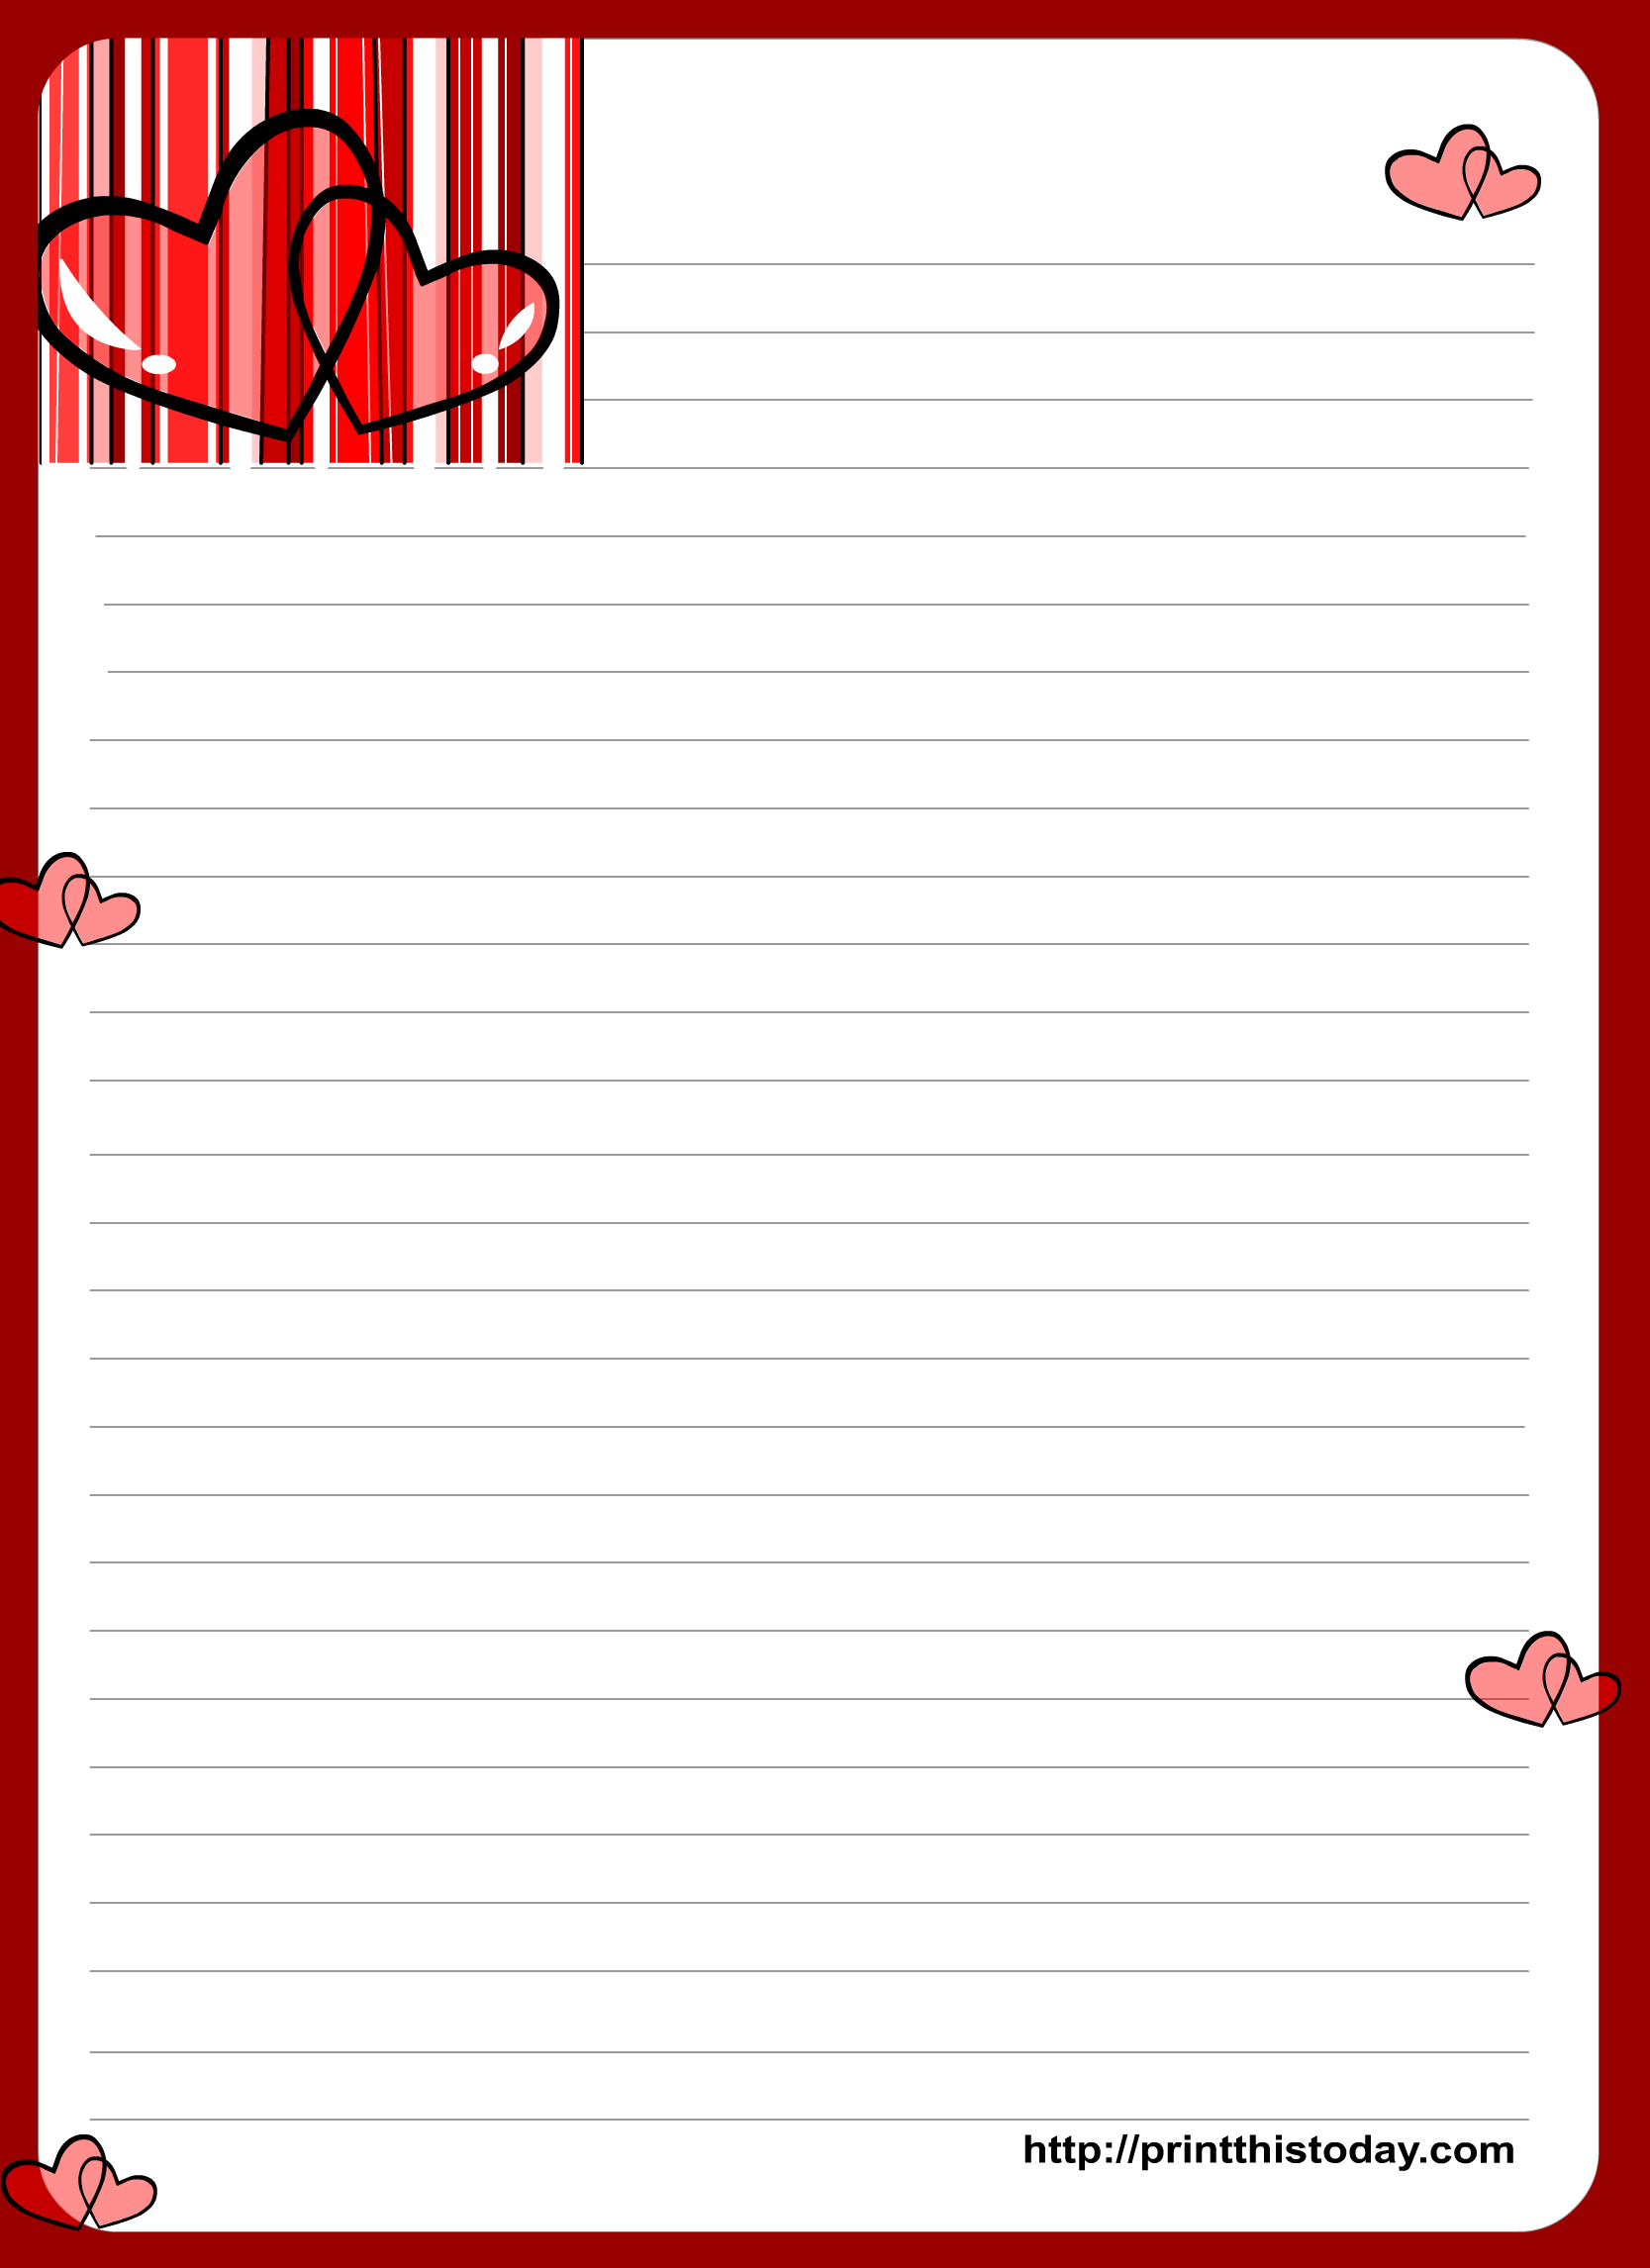 Love Letter Writing Paper With Hearts | Decorative Paper W/ Lines - Free Printable Love Letter Paper